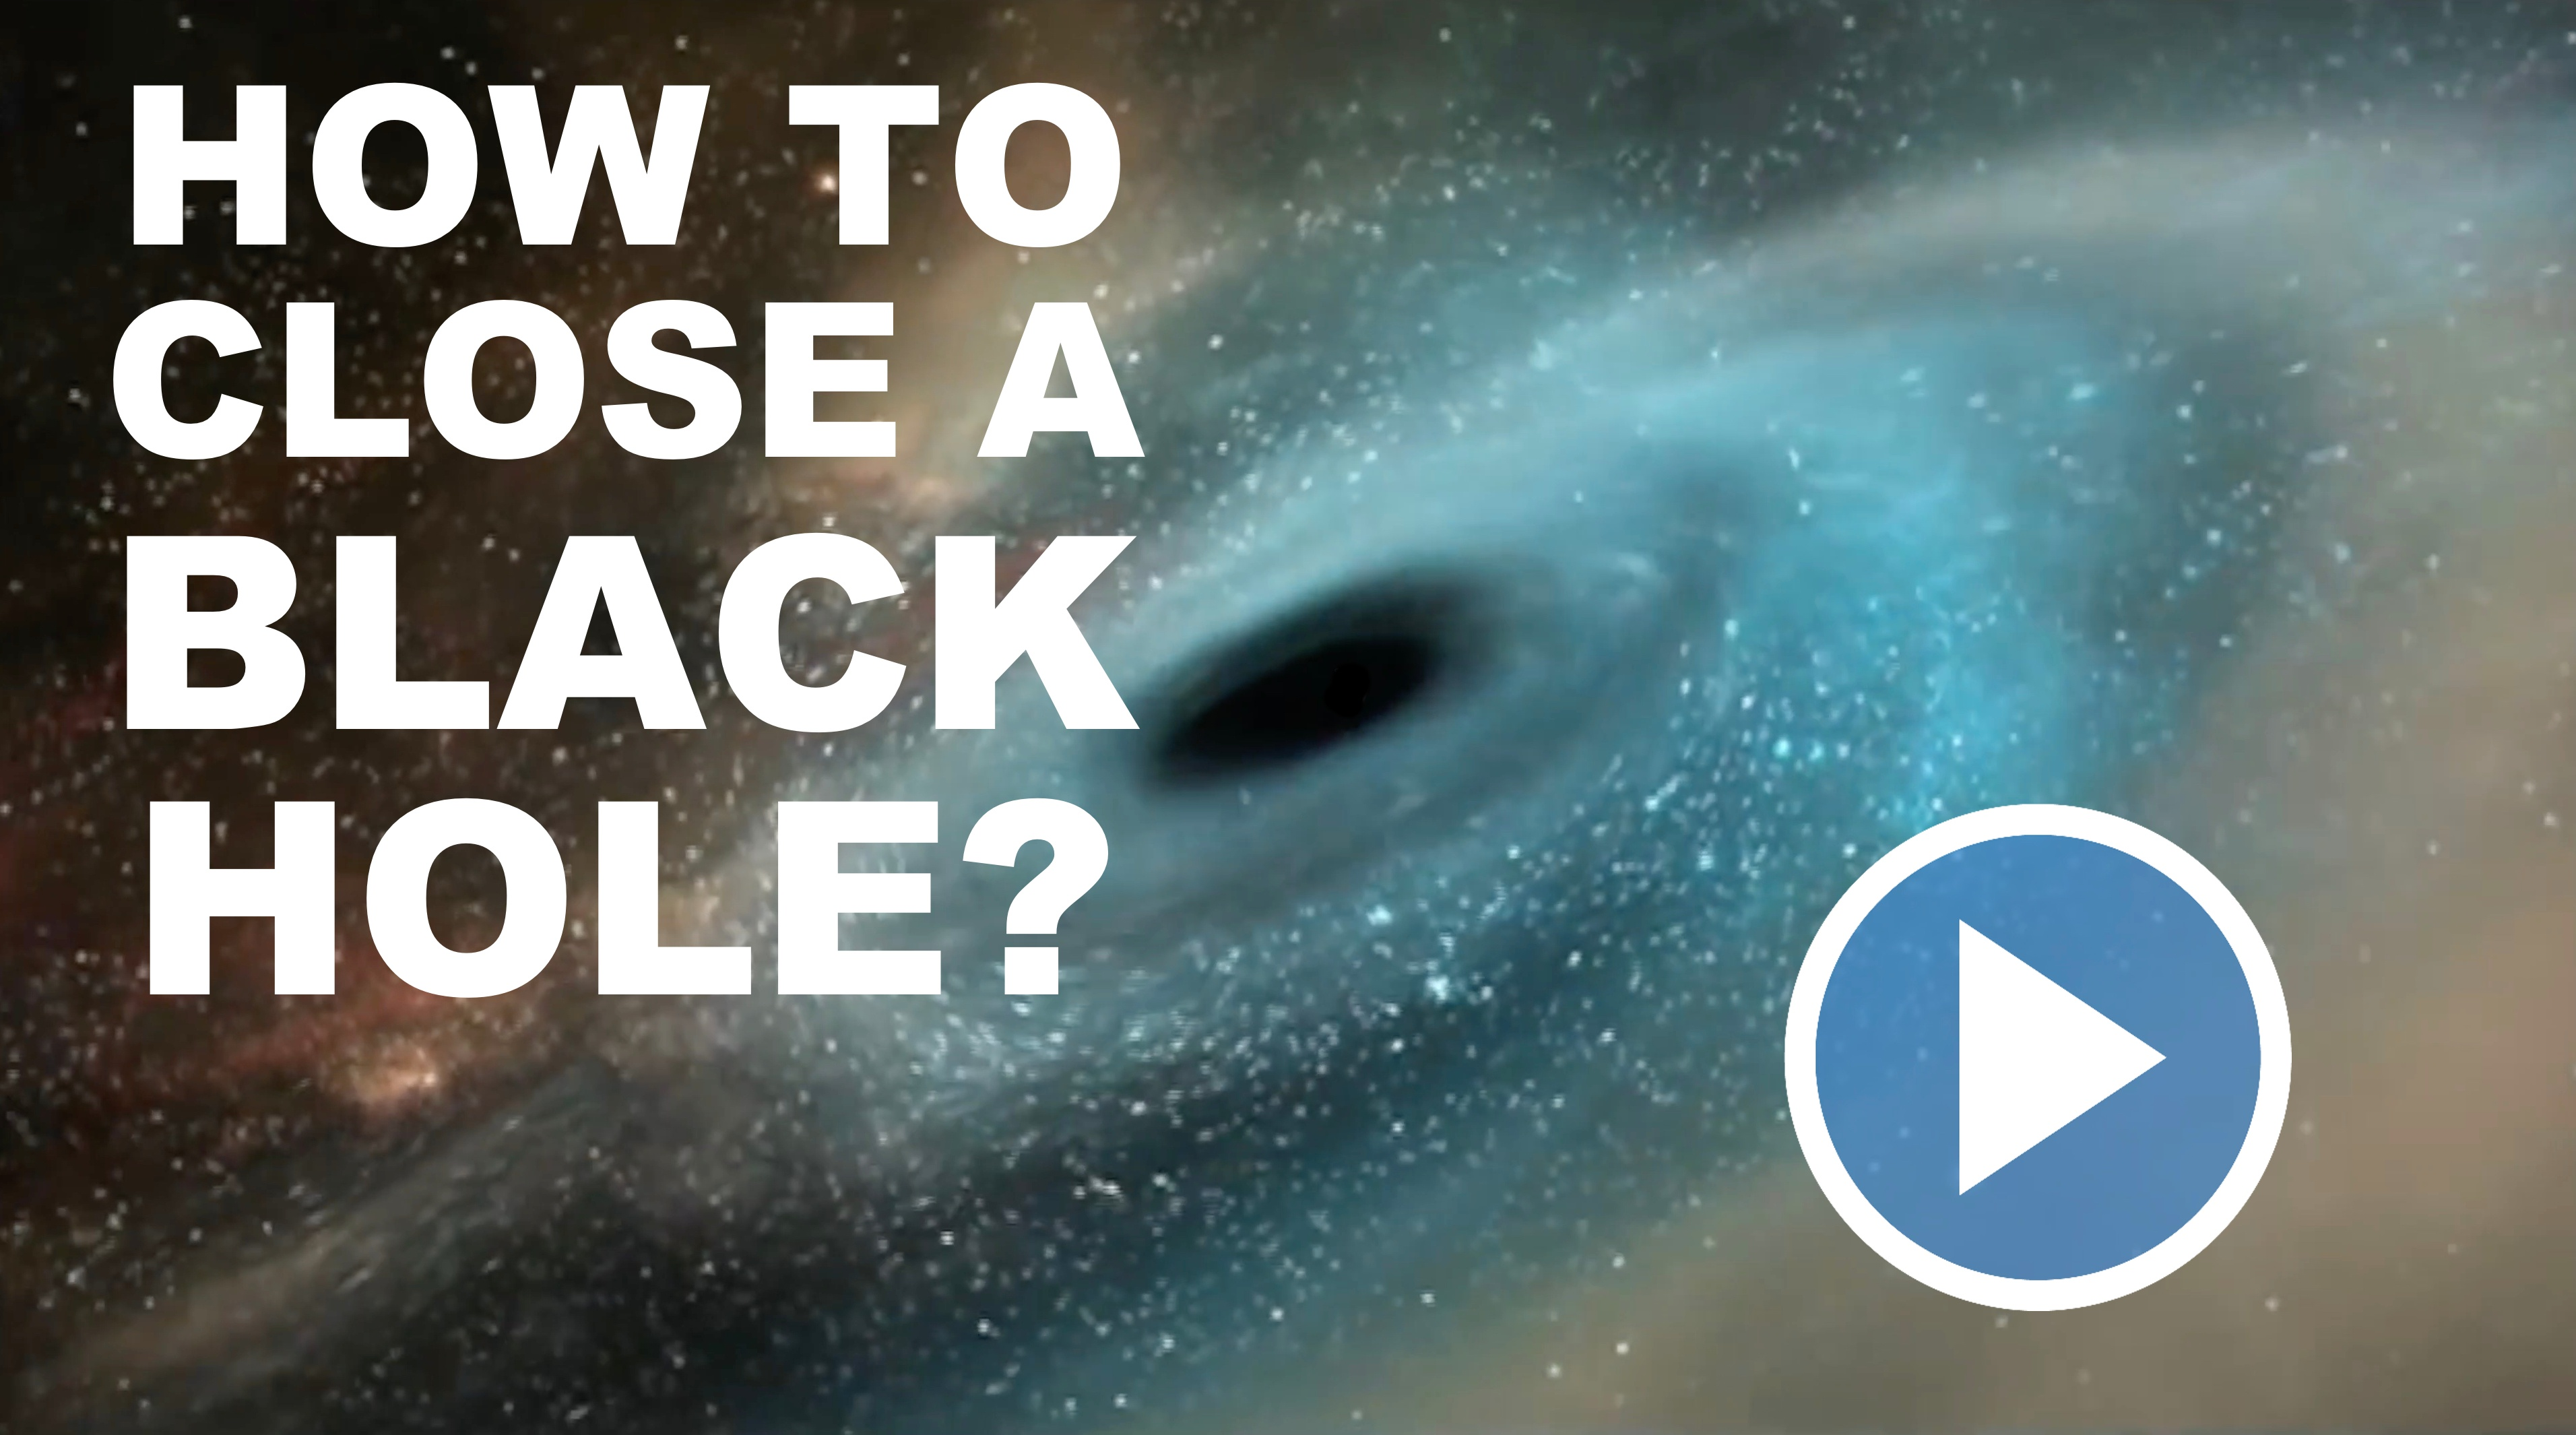 How Do You Cover a Black Hole